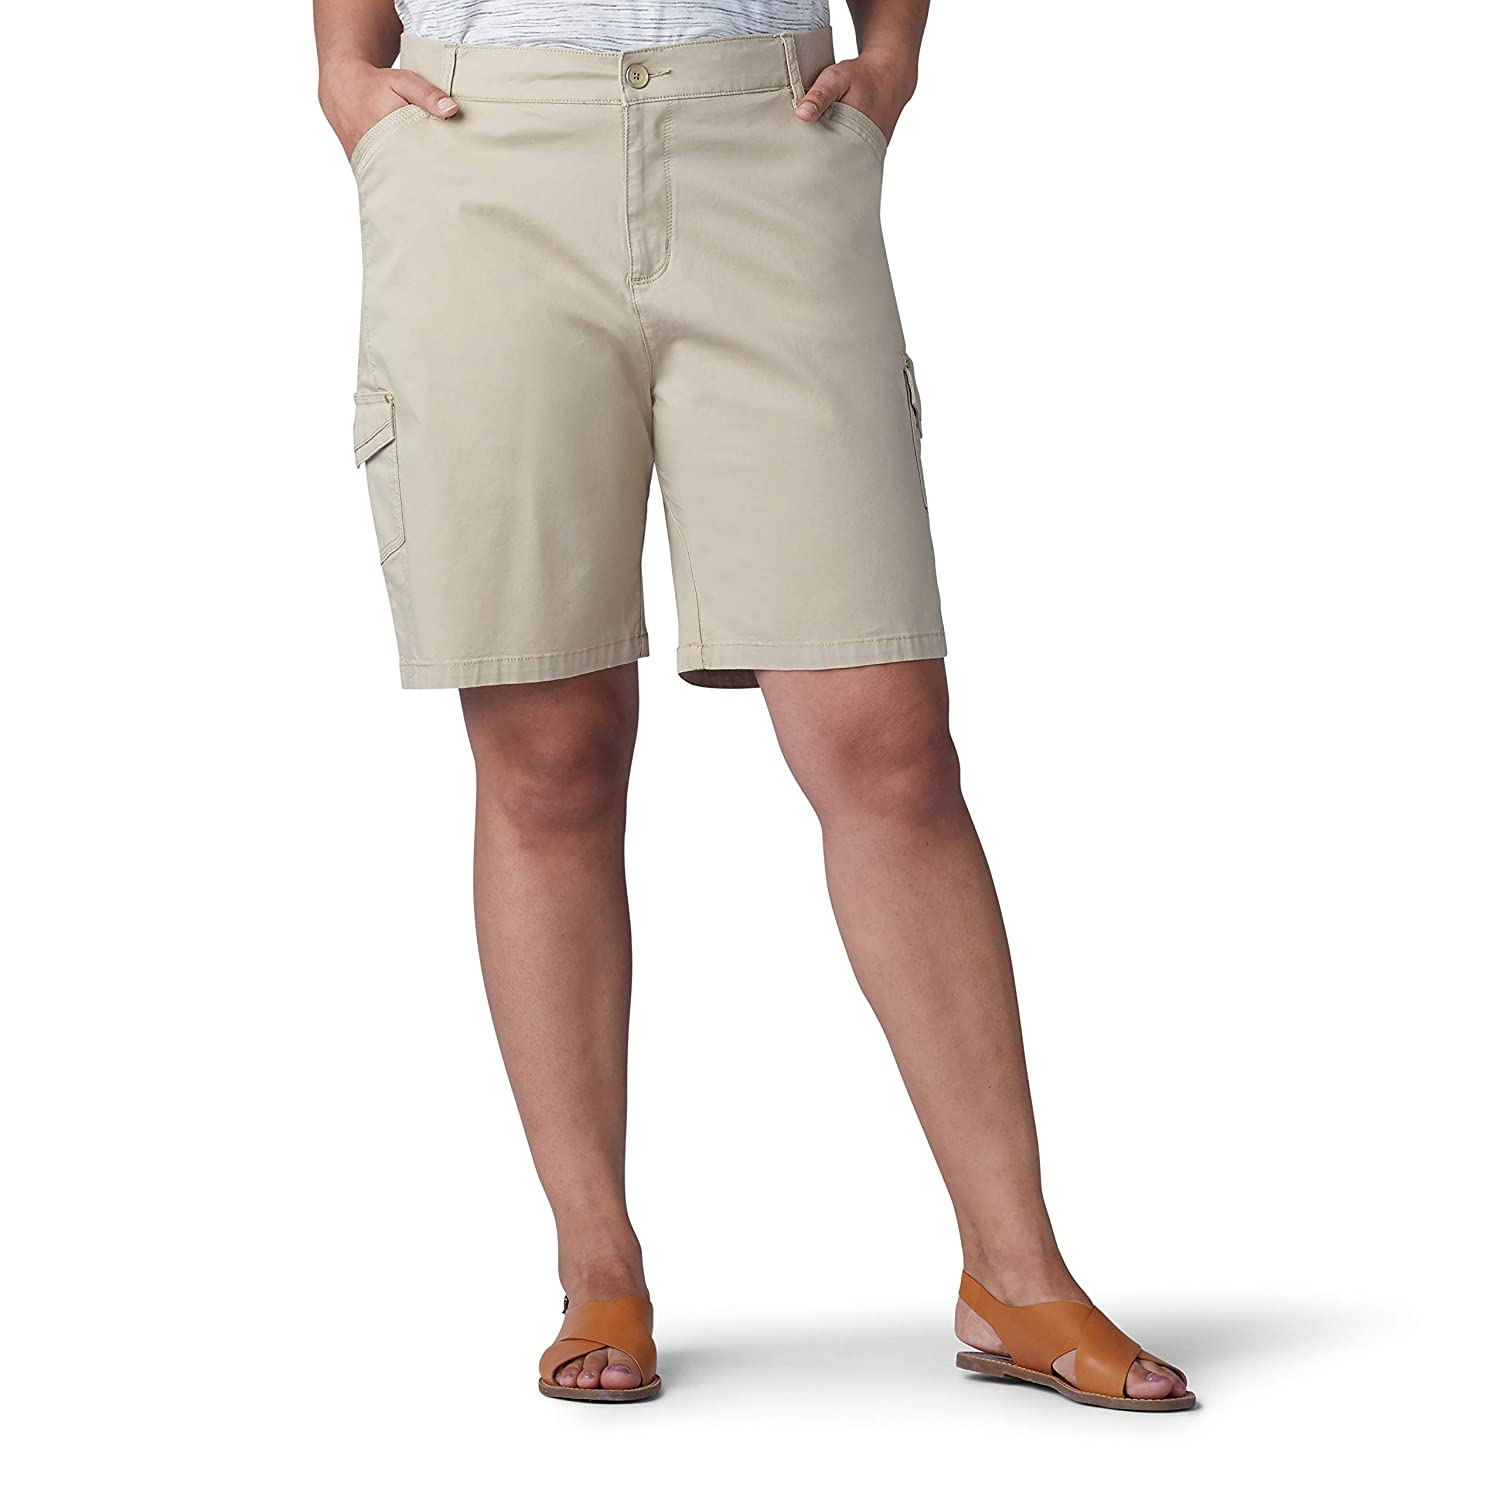 9477bf6bb2 LEE Women's Plus Size Flex-to-go Relaxed Fit Cargo Bermuda Short |  Amazon.com